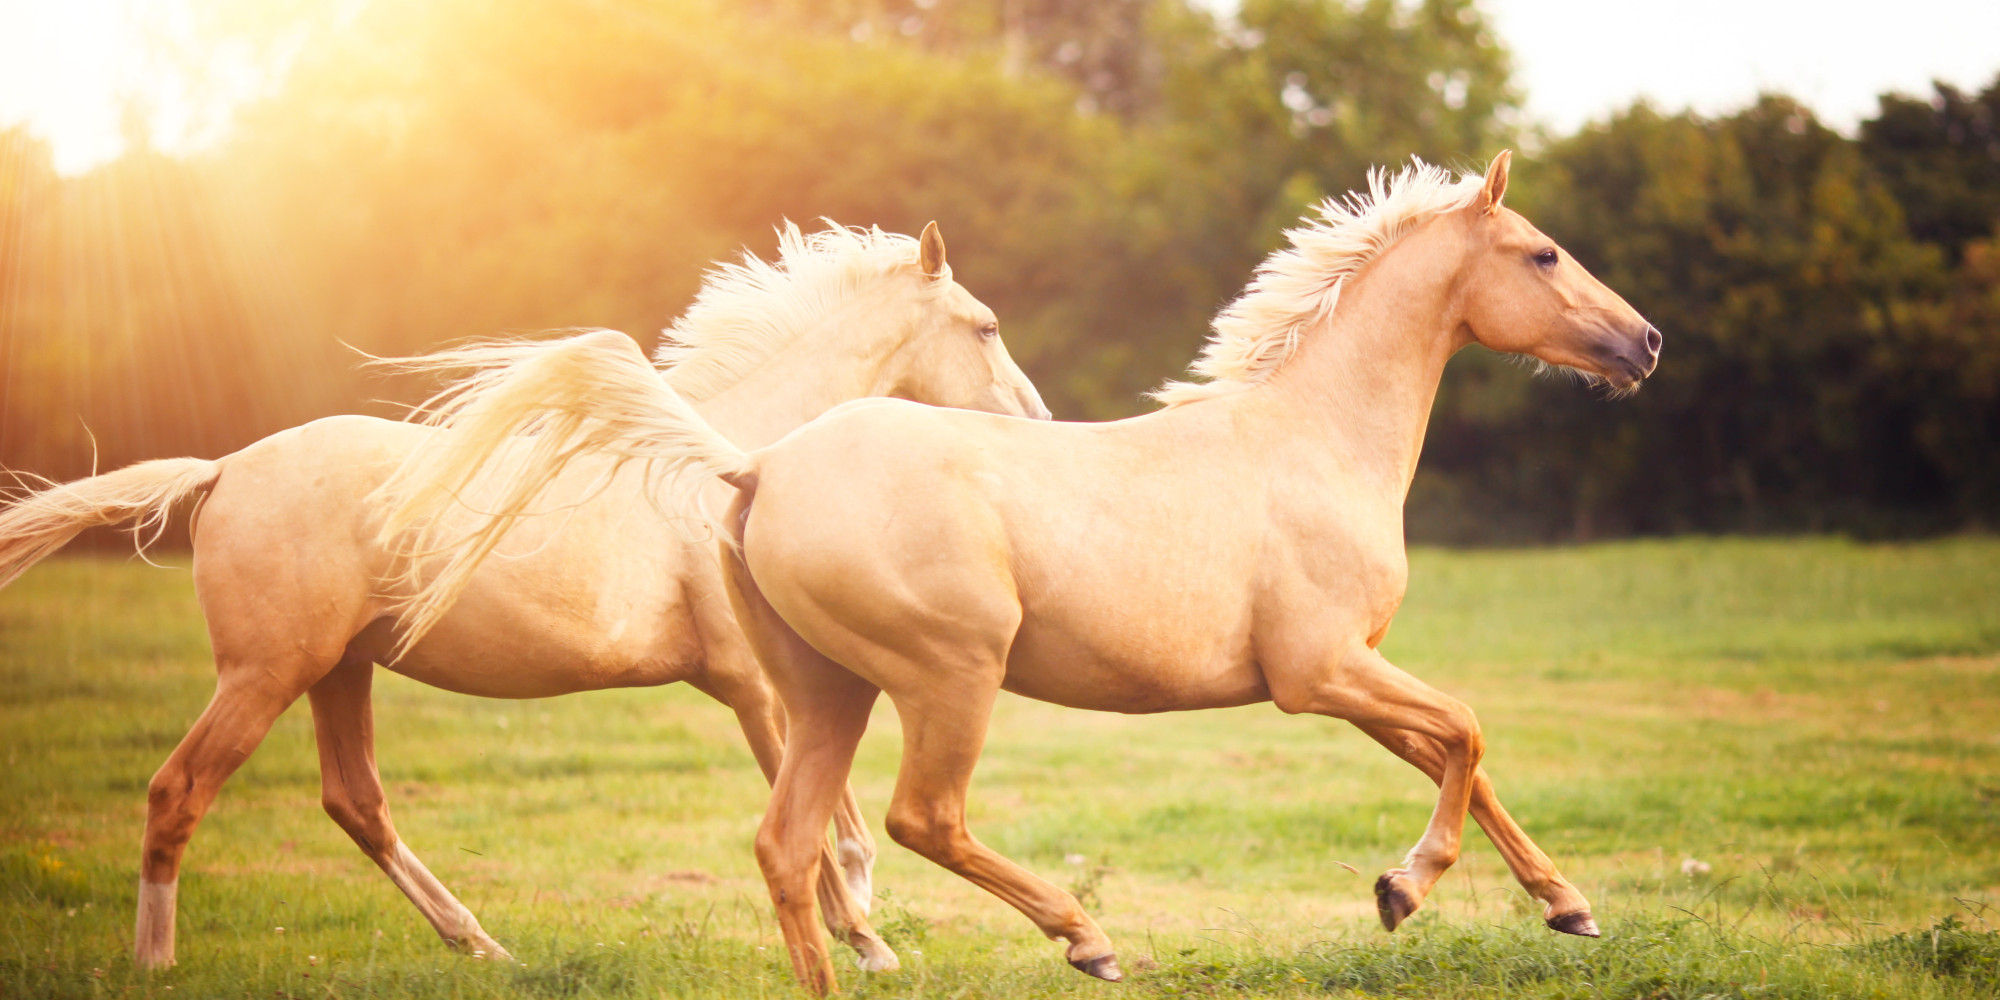 What is the average life span of a horse?